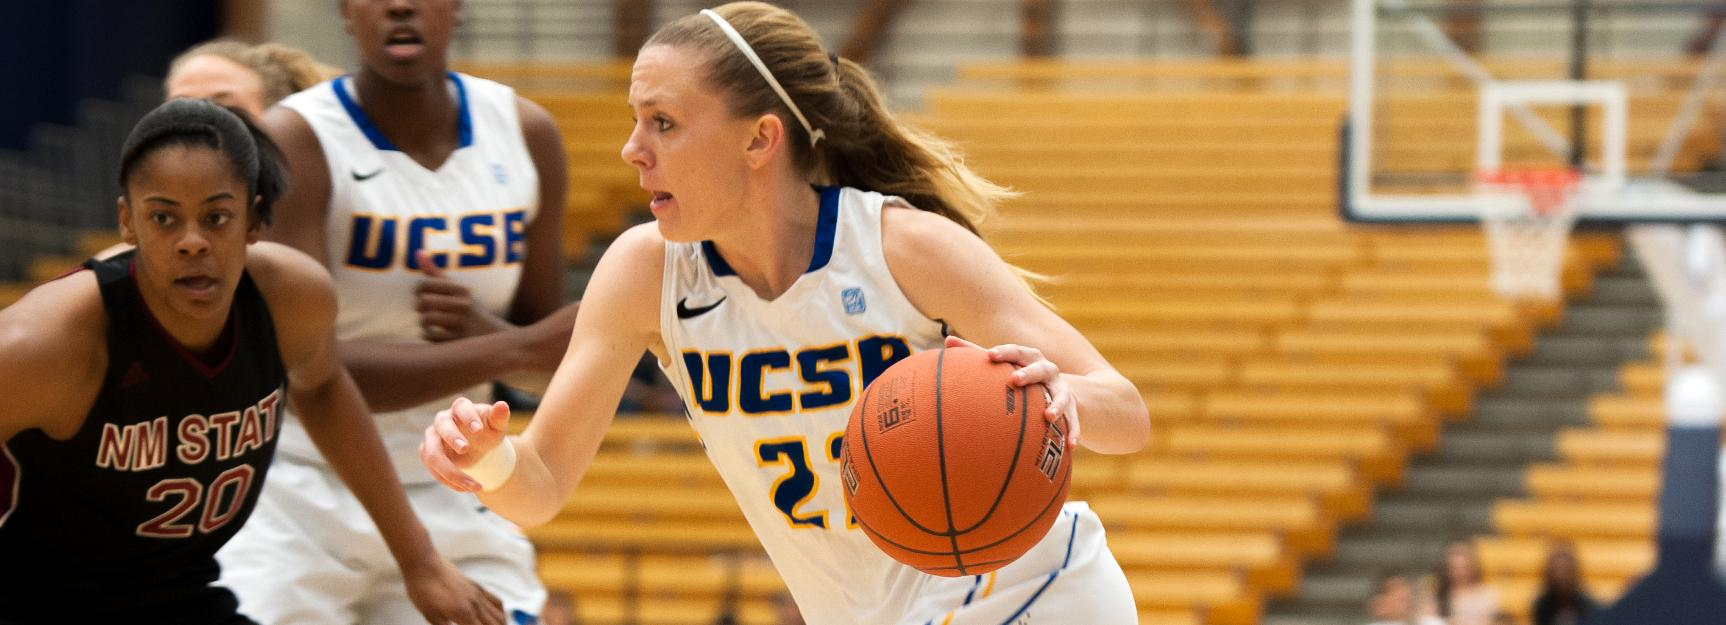 Gauchos' Comeback Falls Short in 69-66 Loss to Vanguard